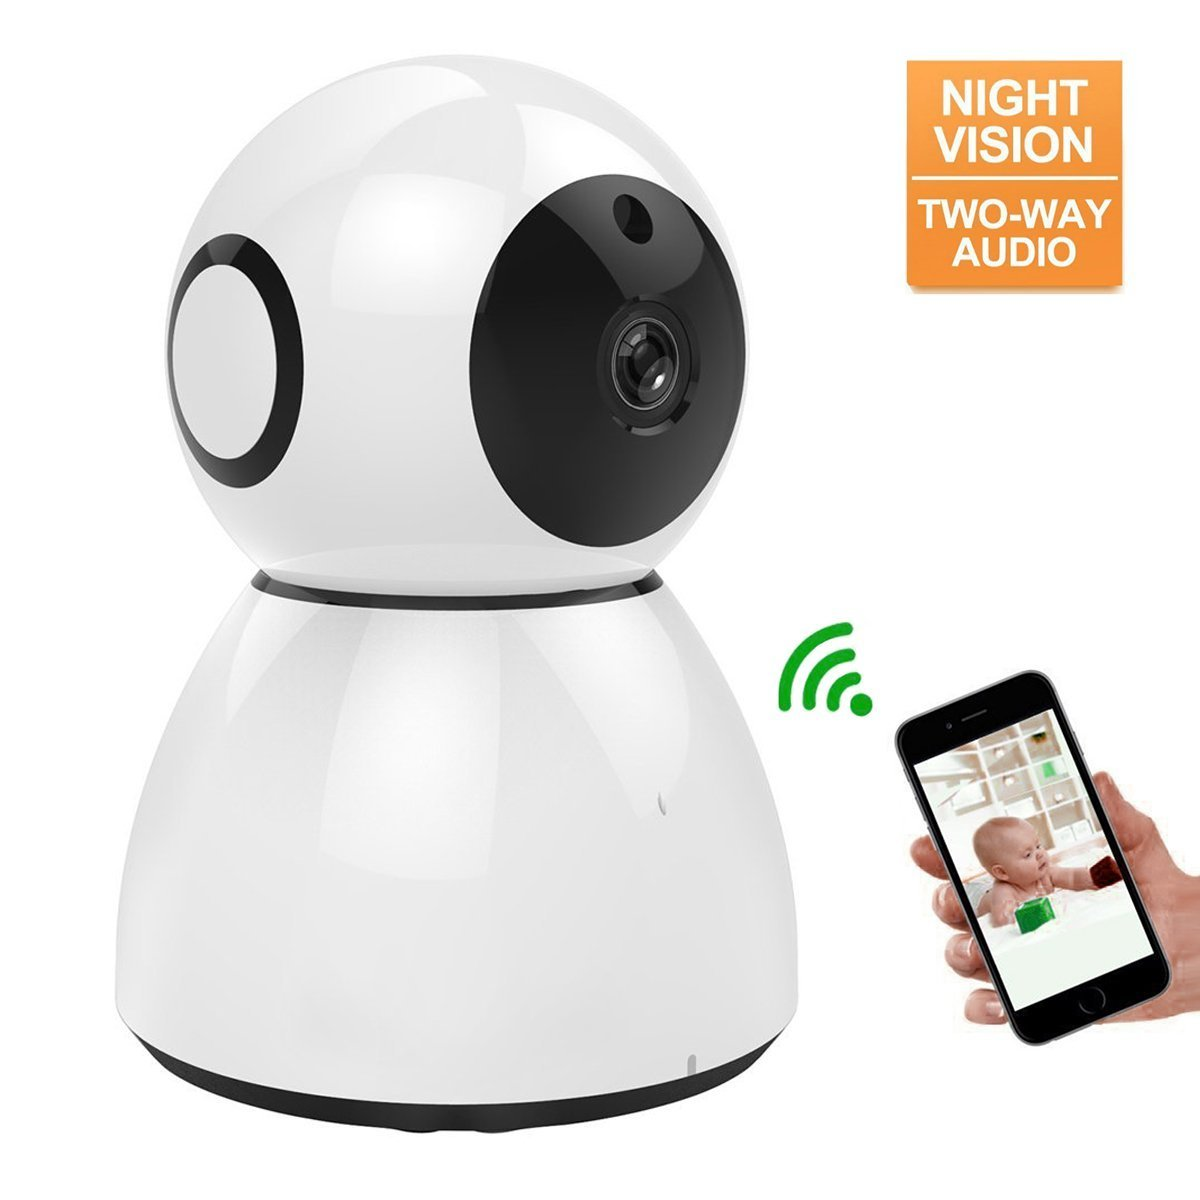 Home Security Camera System, MWAY HD 1080P WiFi IP Camera,2 Way Audio,Night Vision,Indoor/Outdoor Cam for House, Baby, Pet Security white